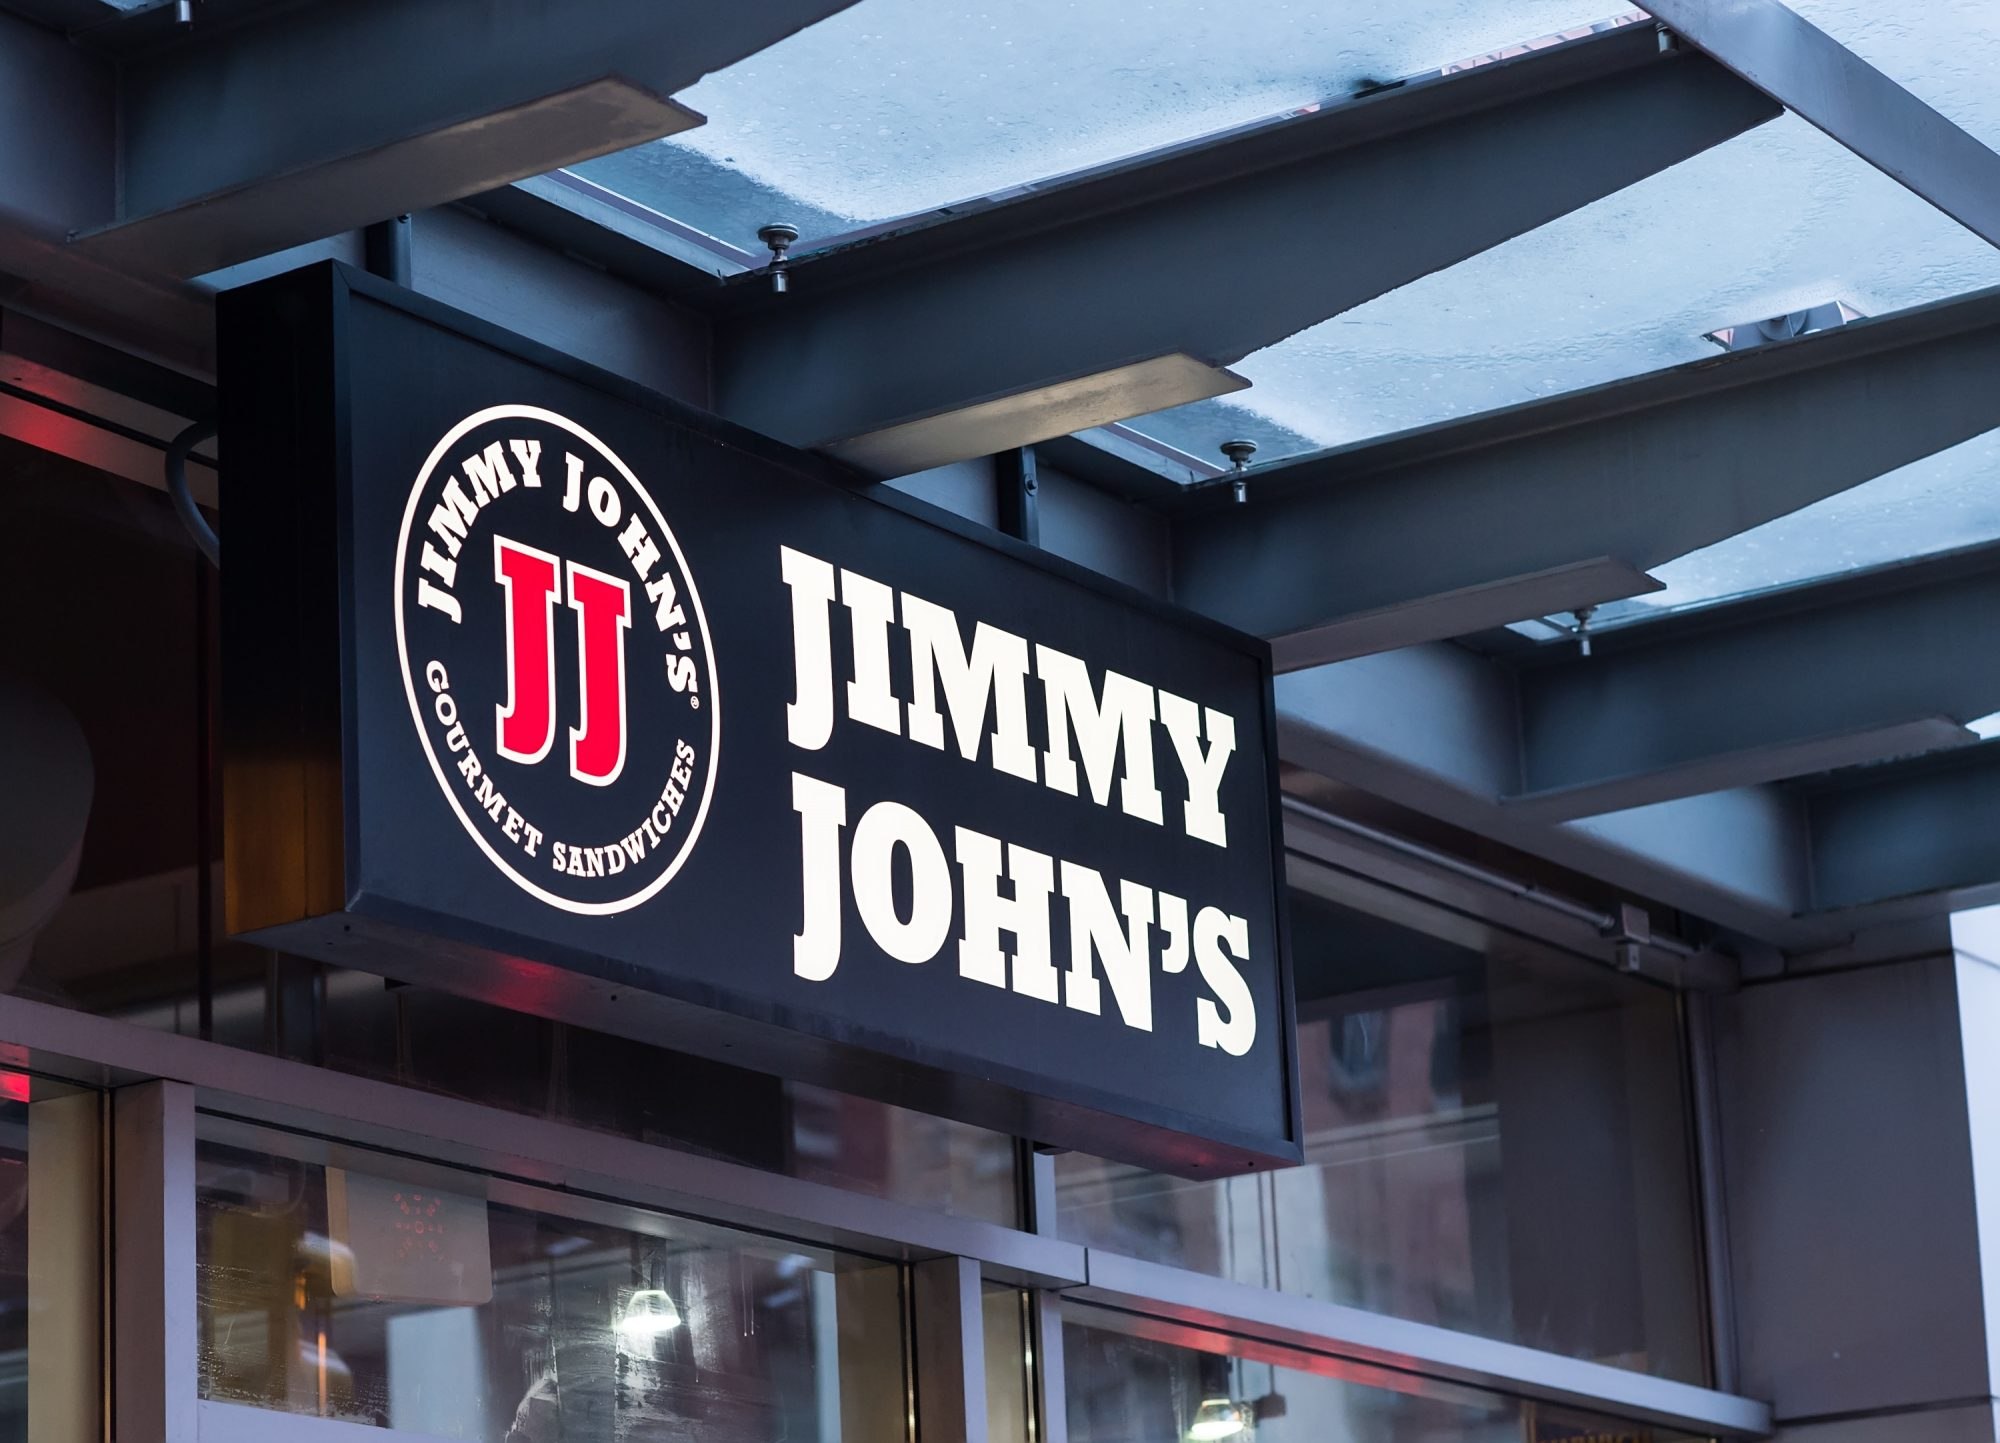 Everything You Need to Know About Getting a $1 Sub From Jimmy John's Today